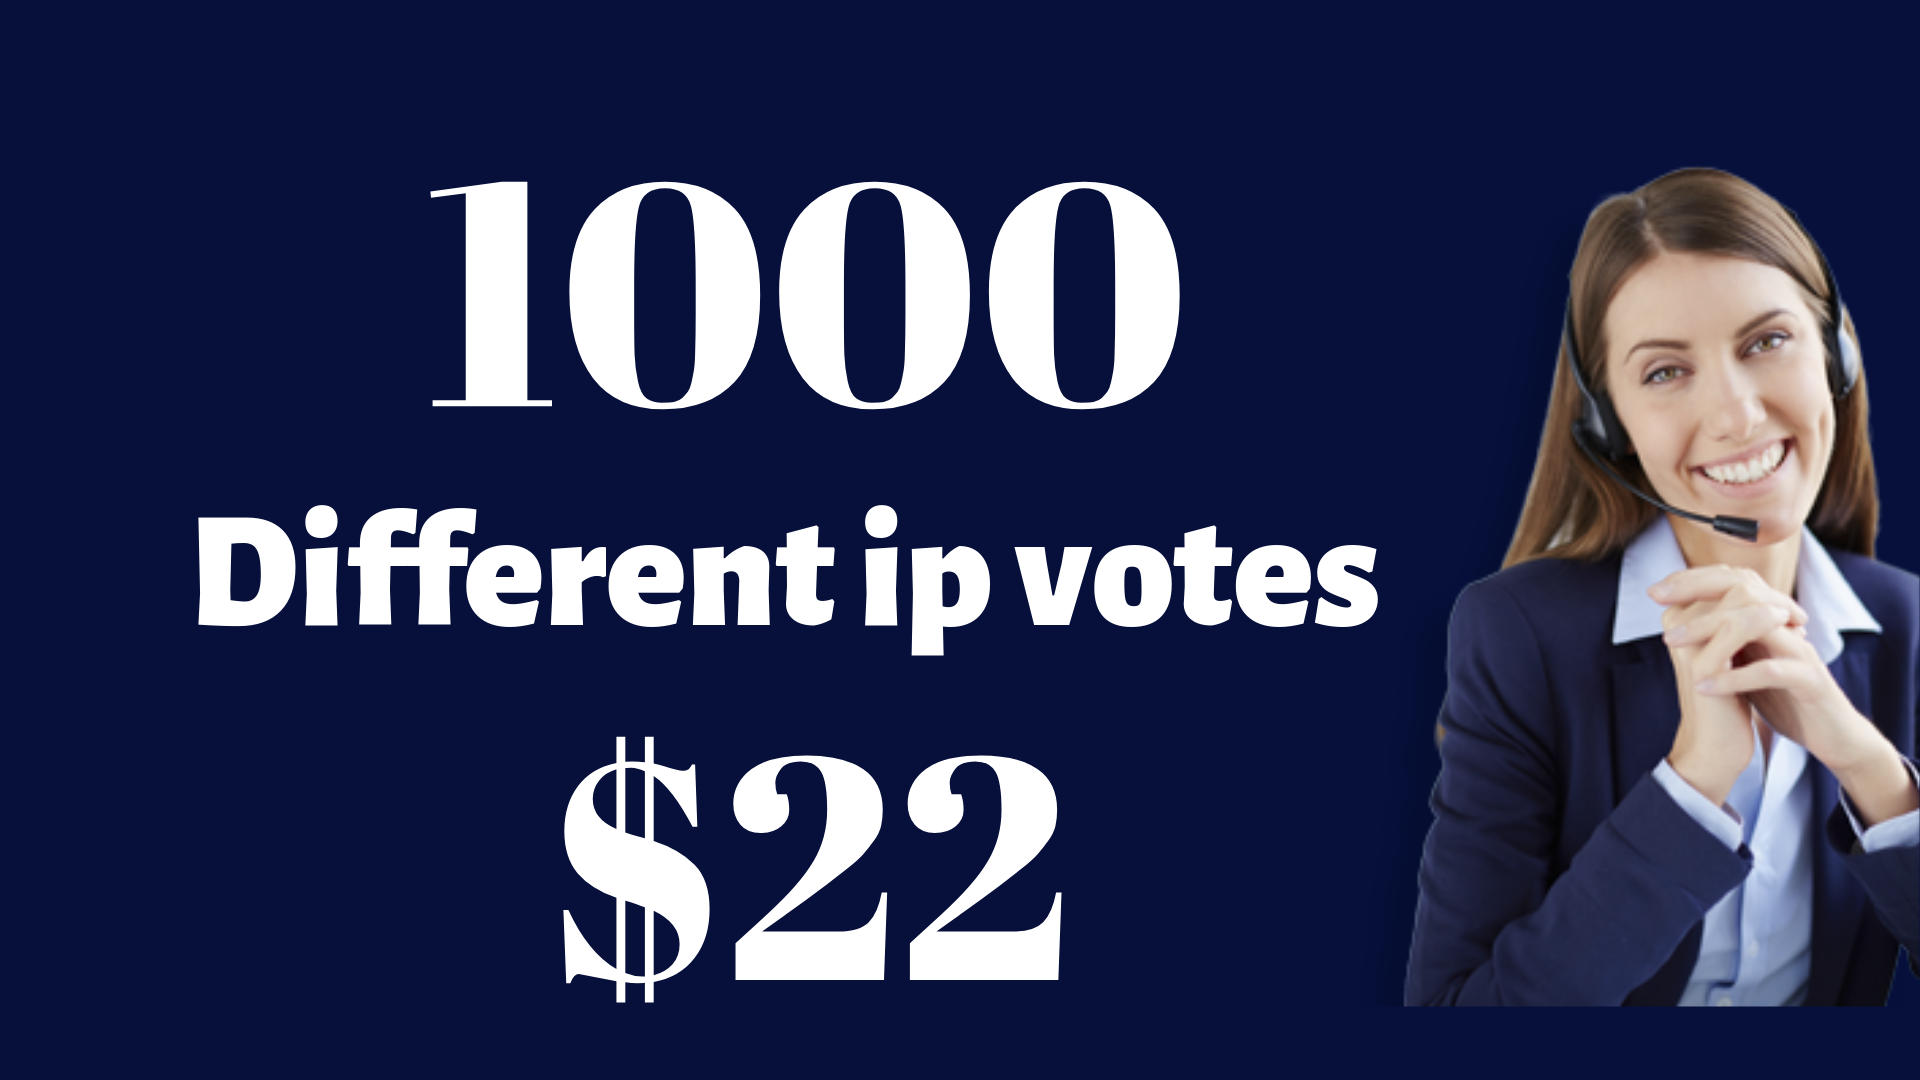 Offer 1000 Guaranteed Different IP Votes In Your Voting Contest